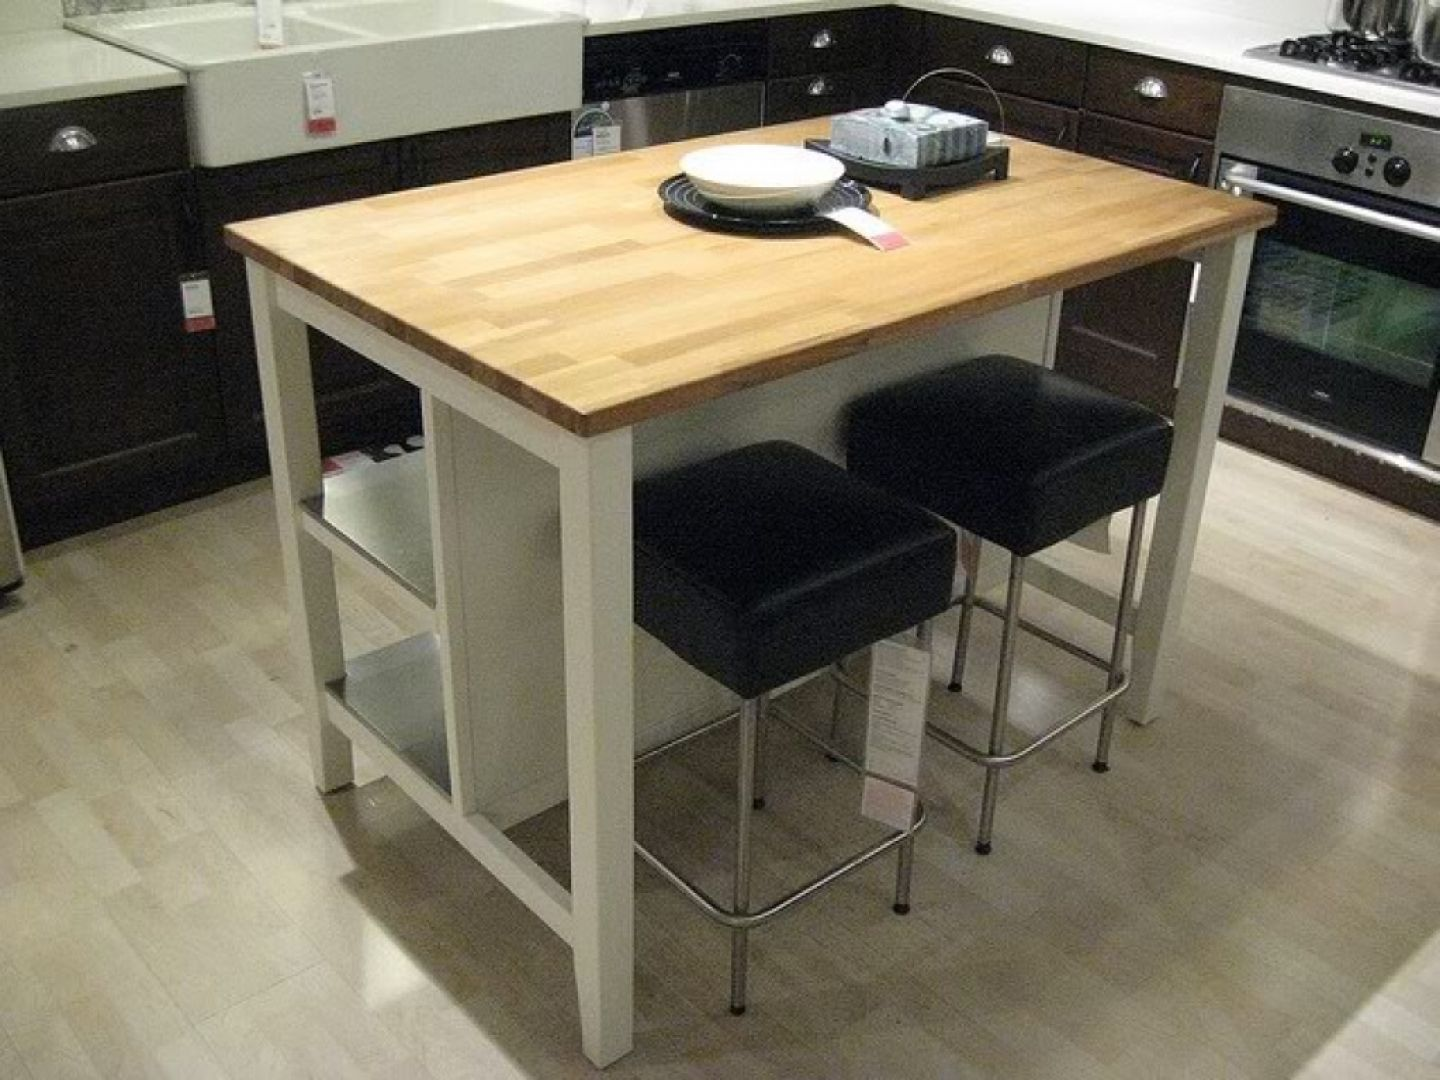 kitchen island table ikea creative want it now ikea kitchen island picture house 19800